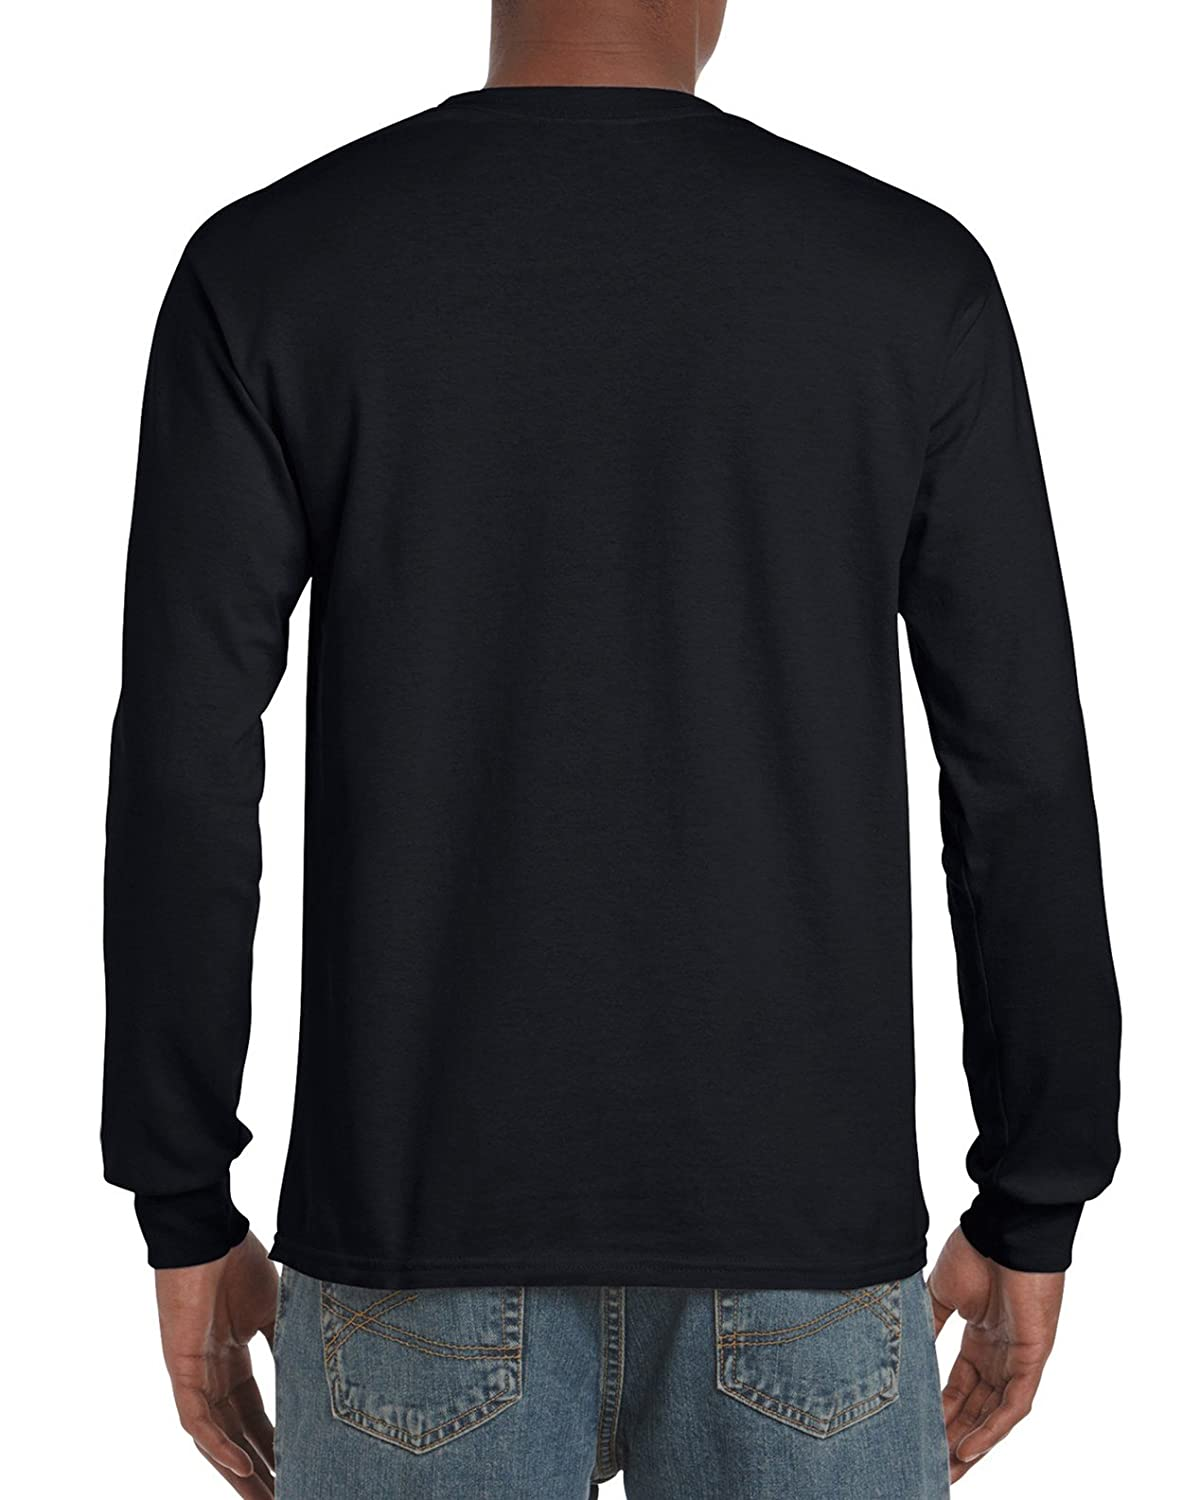 056947bd Gildan Men's Ultra Cotton Adult Long Sleeve T-Shirt, 2-Pack: Amazon.in:  Clothing & Accessories